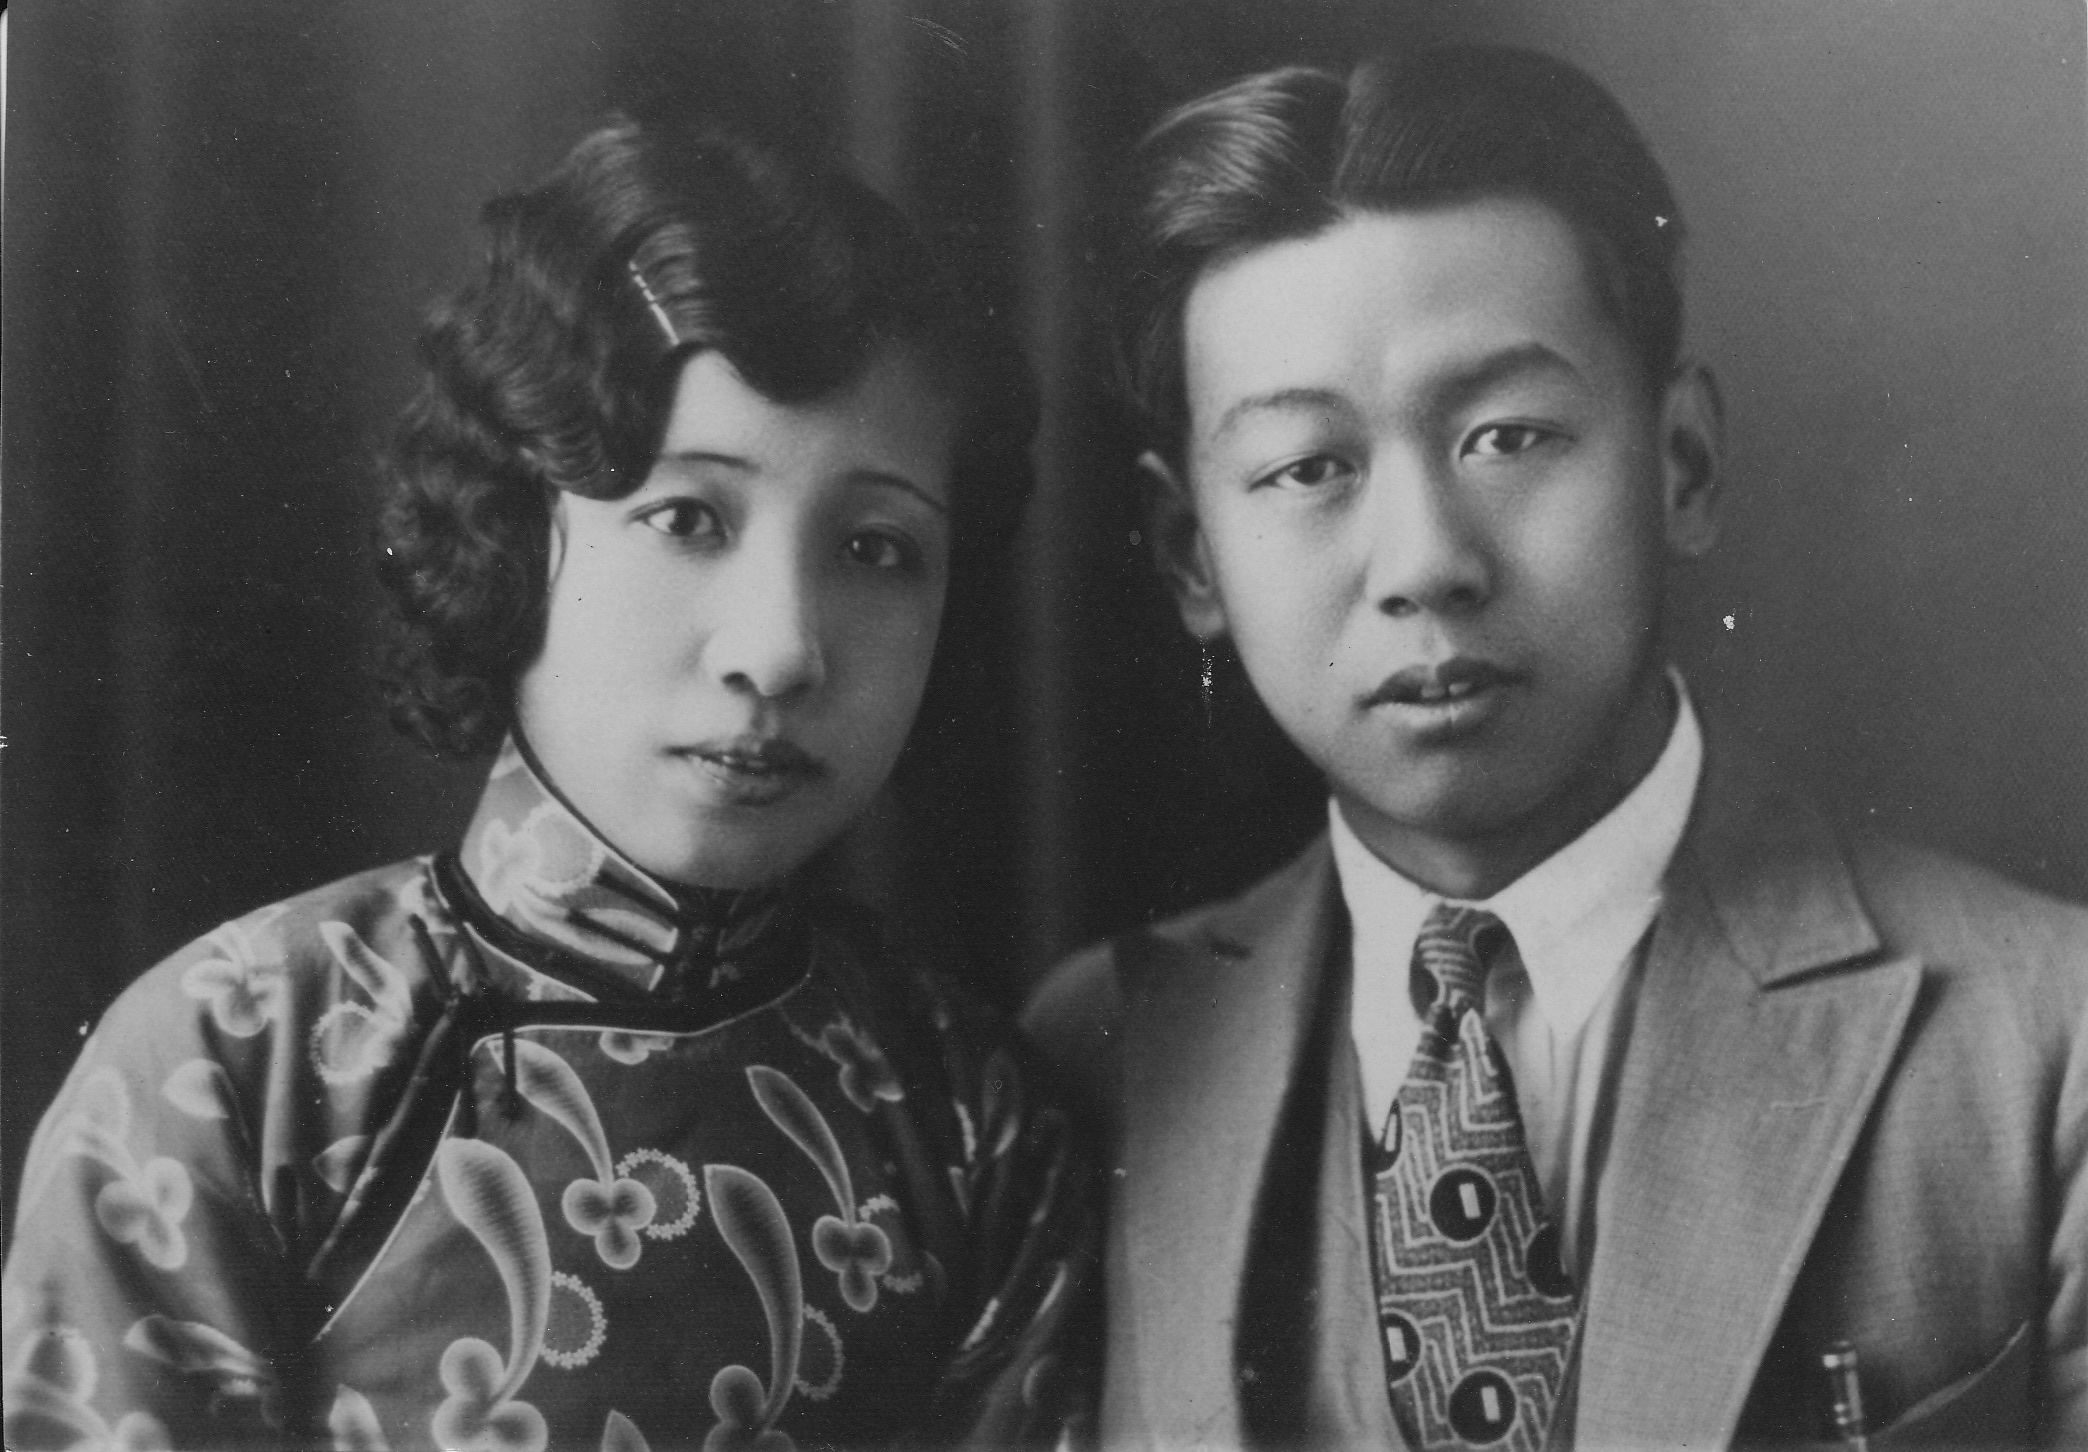 Lee and Kuan, ca. 1925, before coming to MIT. Image courtesy Ami Kuan Danoff.